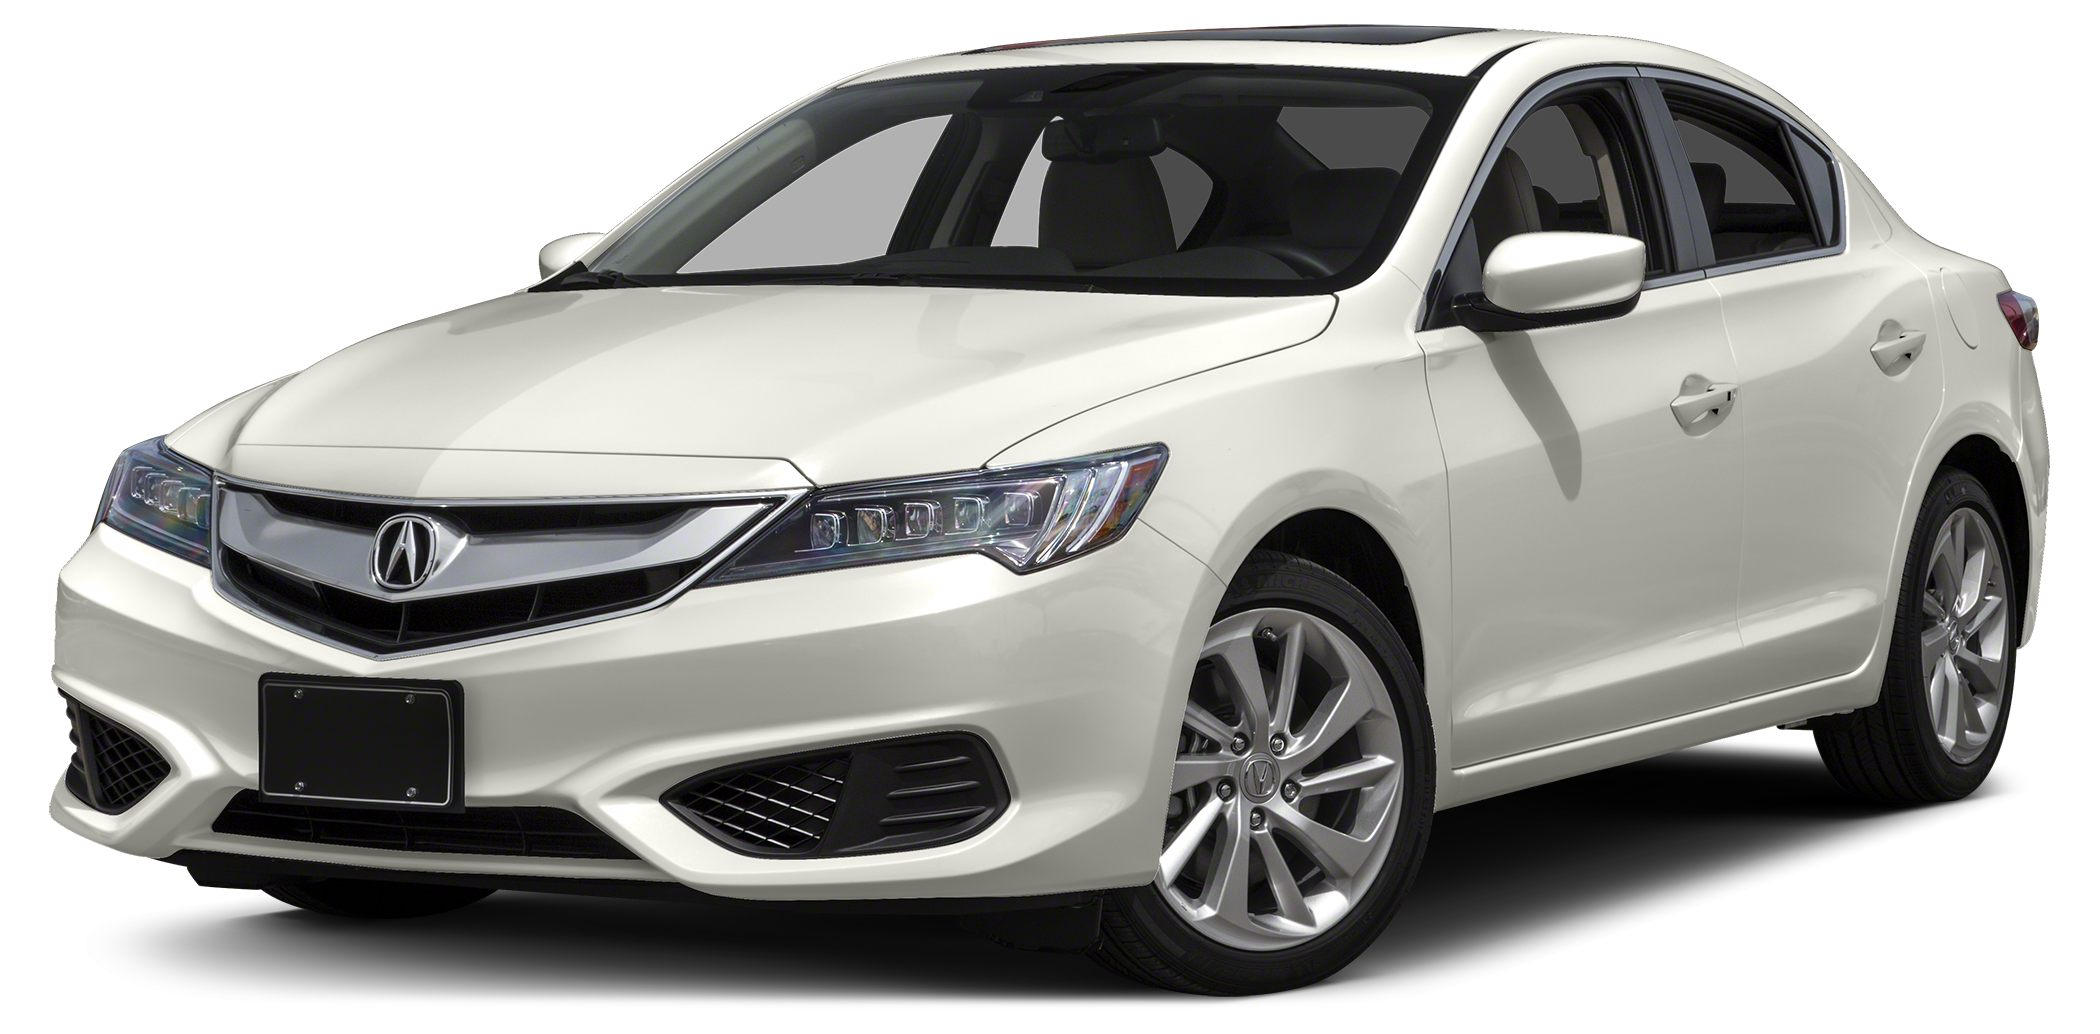 2016 Acura ILX 24 Technology Plus Miles 7Color Bellanova White Pearl Stock A013823 VIN 19UD